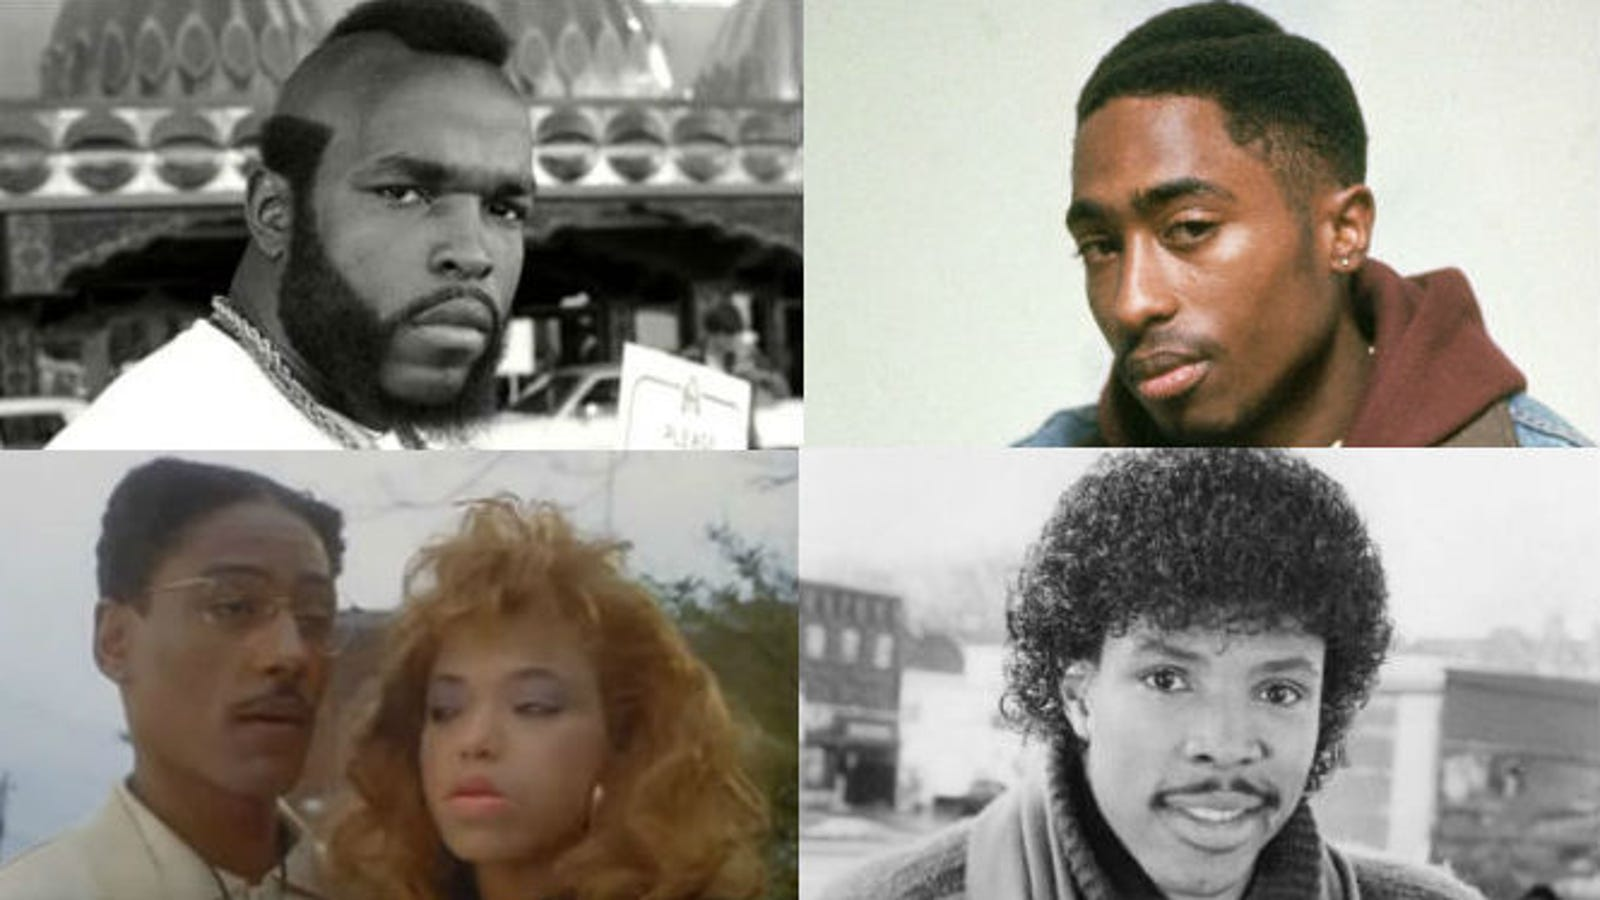 10 Throwback Black Hairstyles We Should Leave In The Past